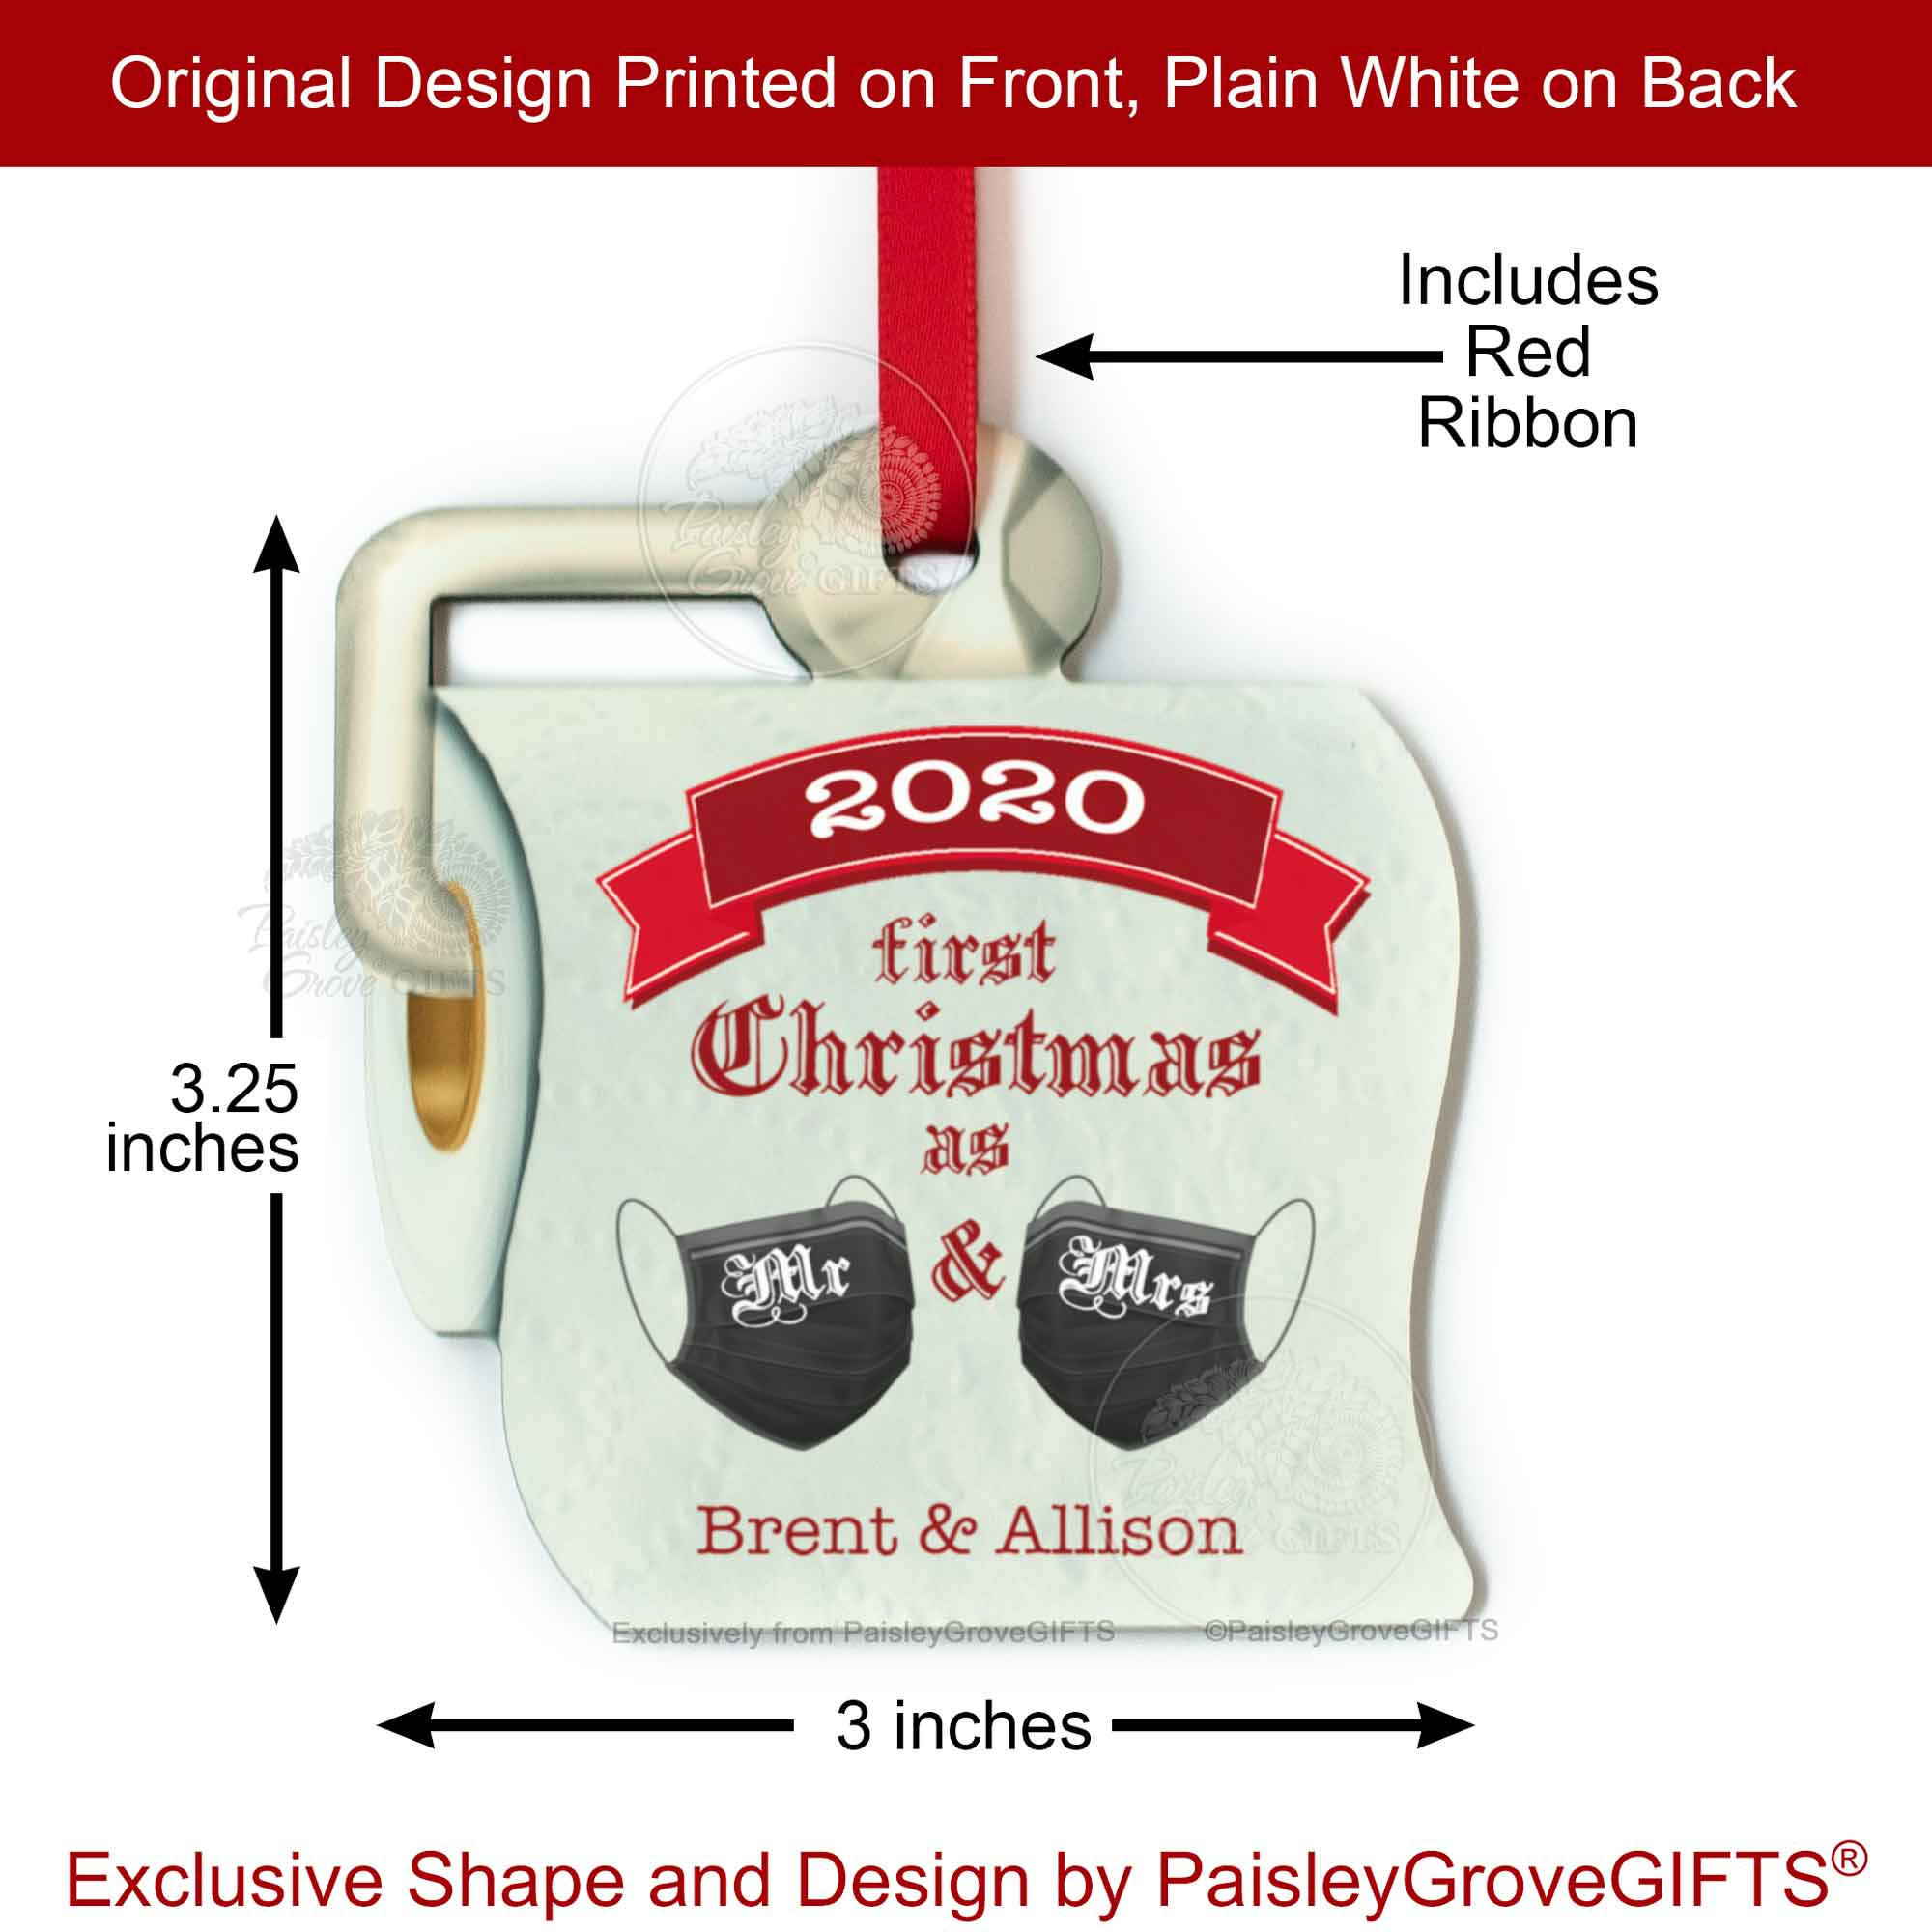 CopyrightPaisleyGroveGIFTS S525f2 3.25 x 3 inches First Christmas Married Toilet Paper Ornament 2020